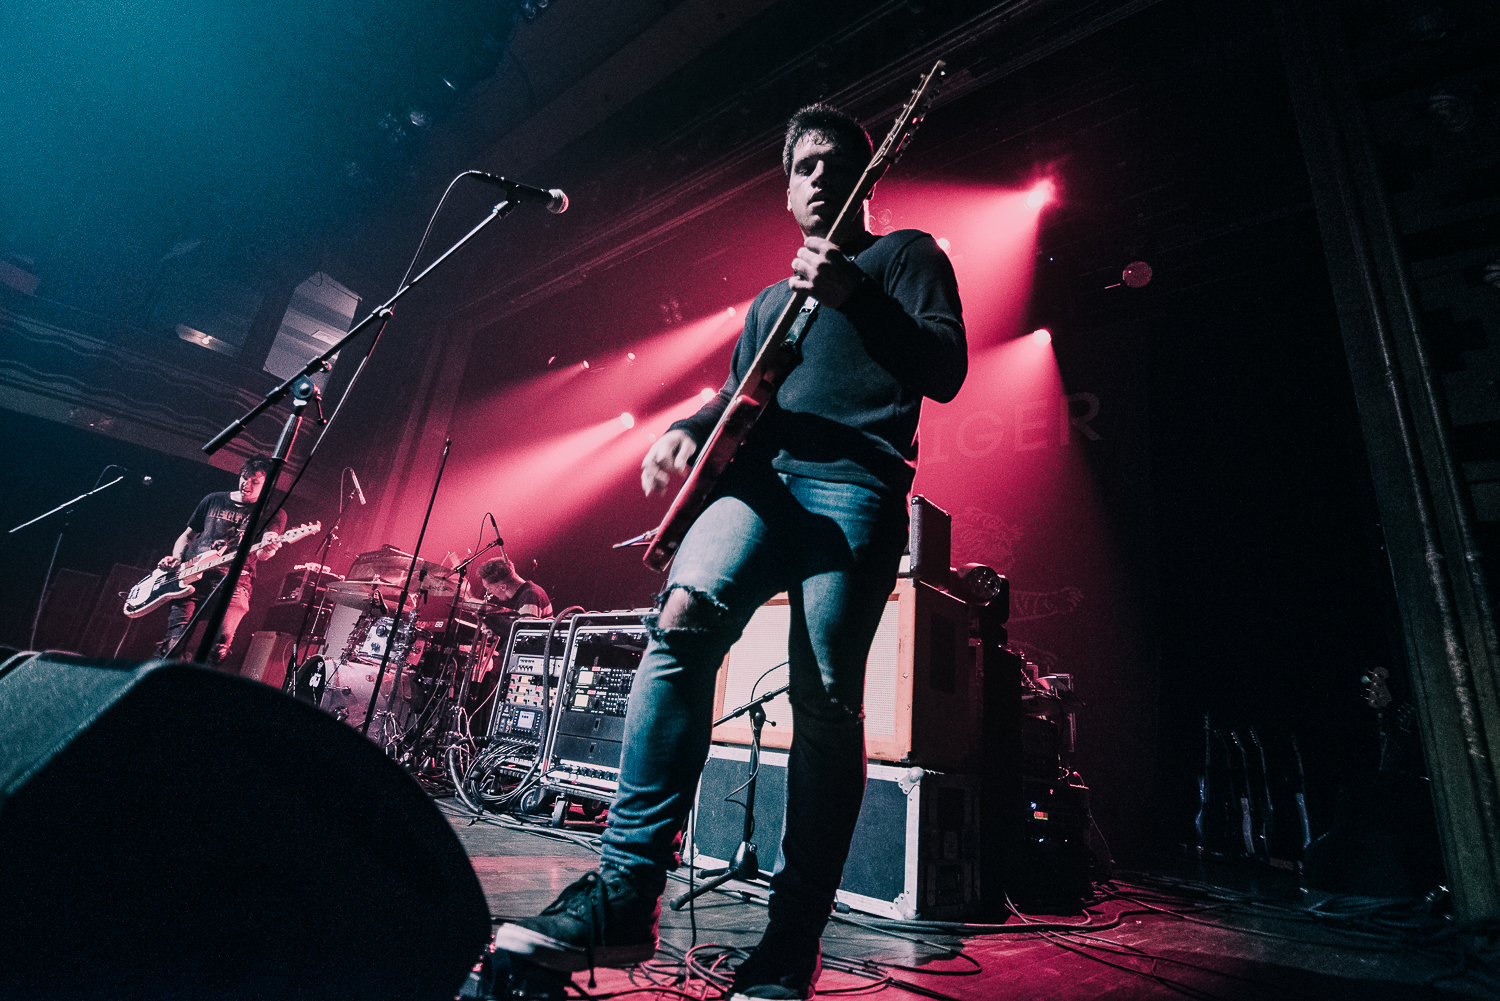 161009 nyc the white noise-5271.jpg